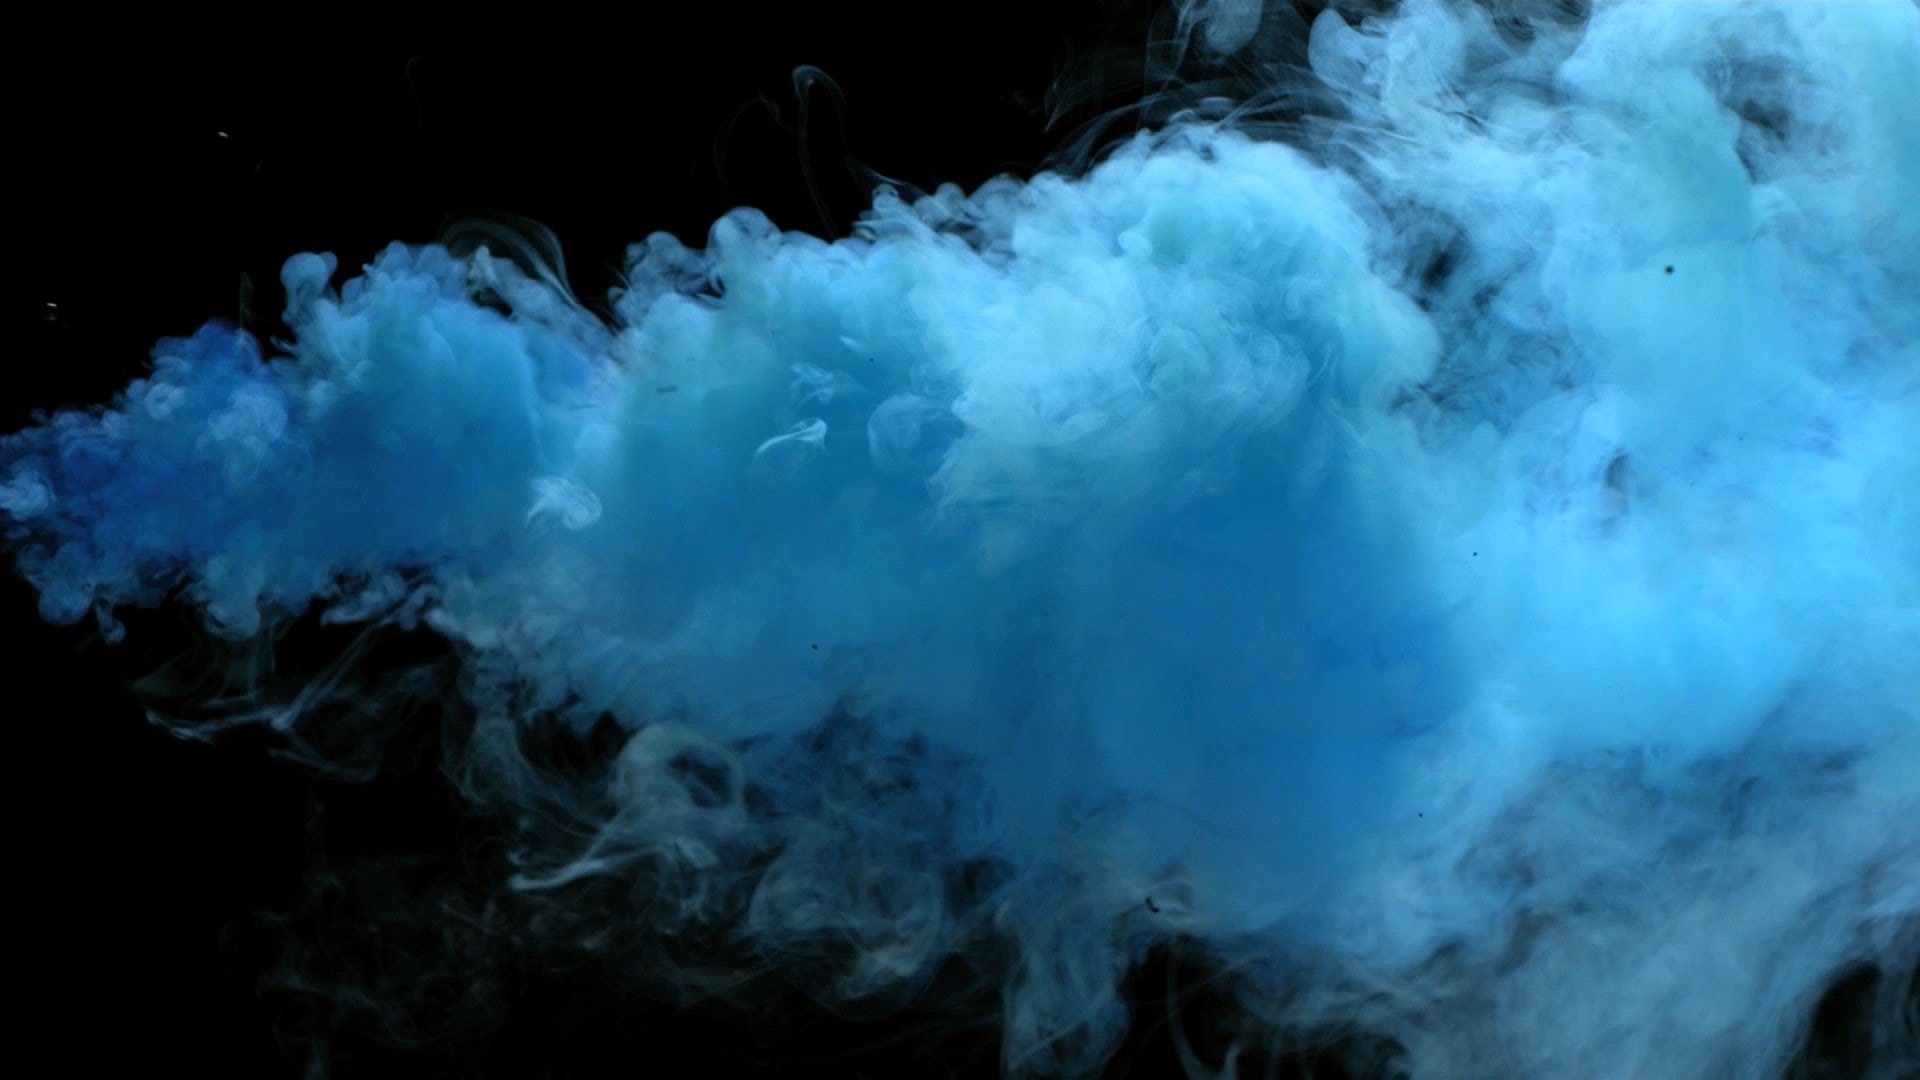 Top HD Blue Smoke Wallpaper Earth HD 11766 KB 1920x1080